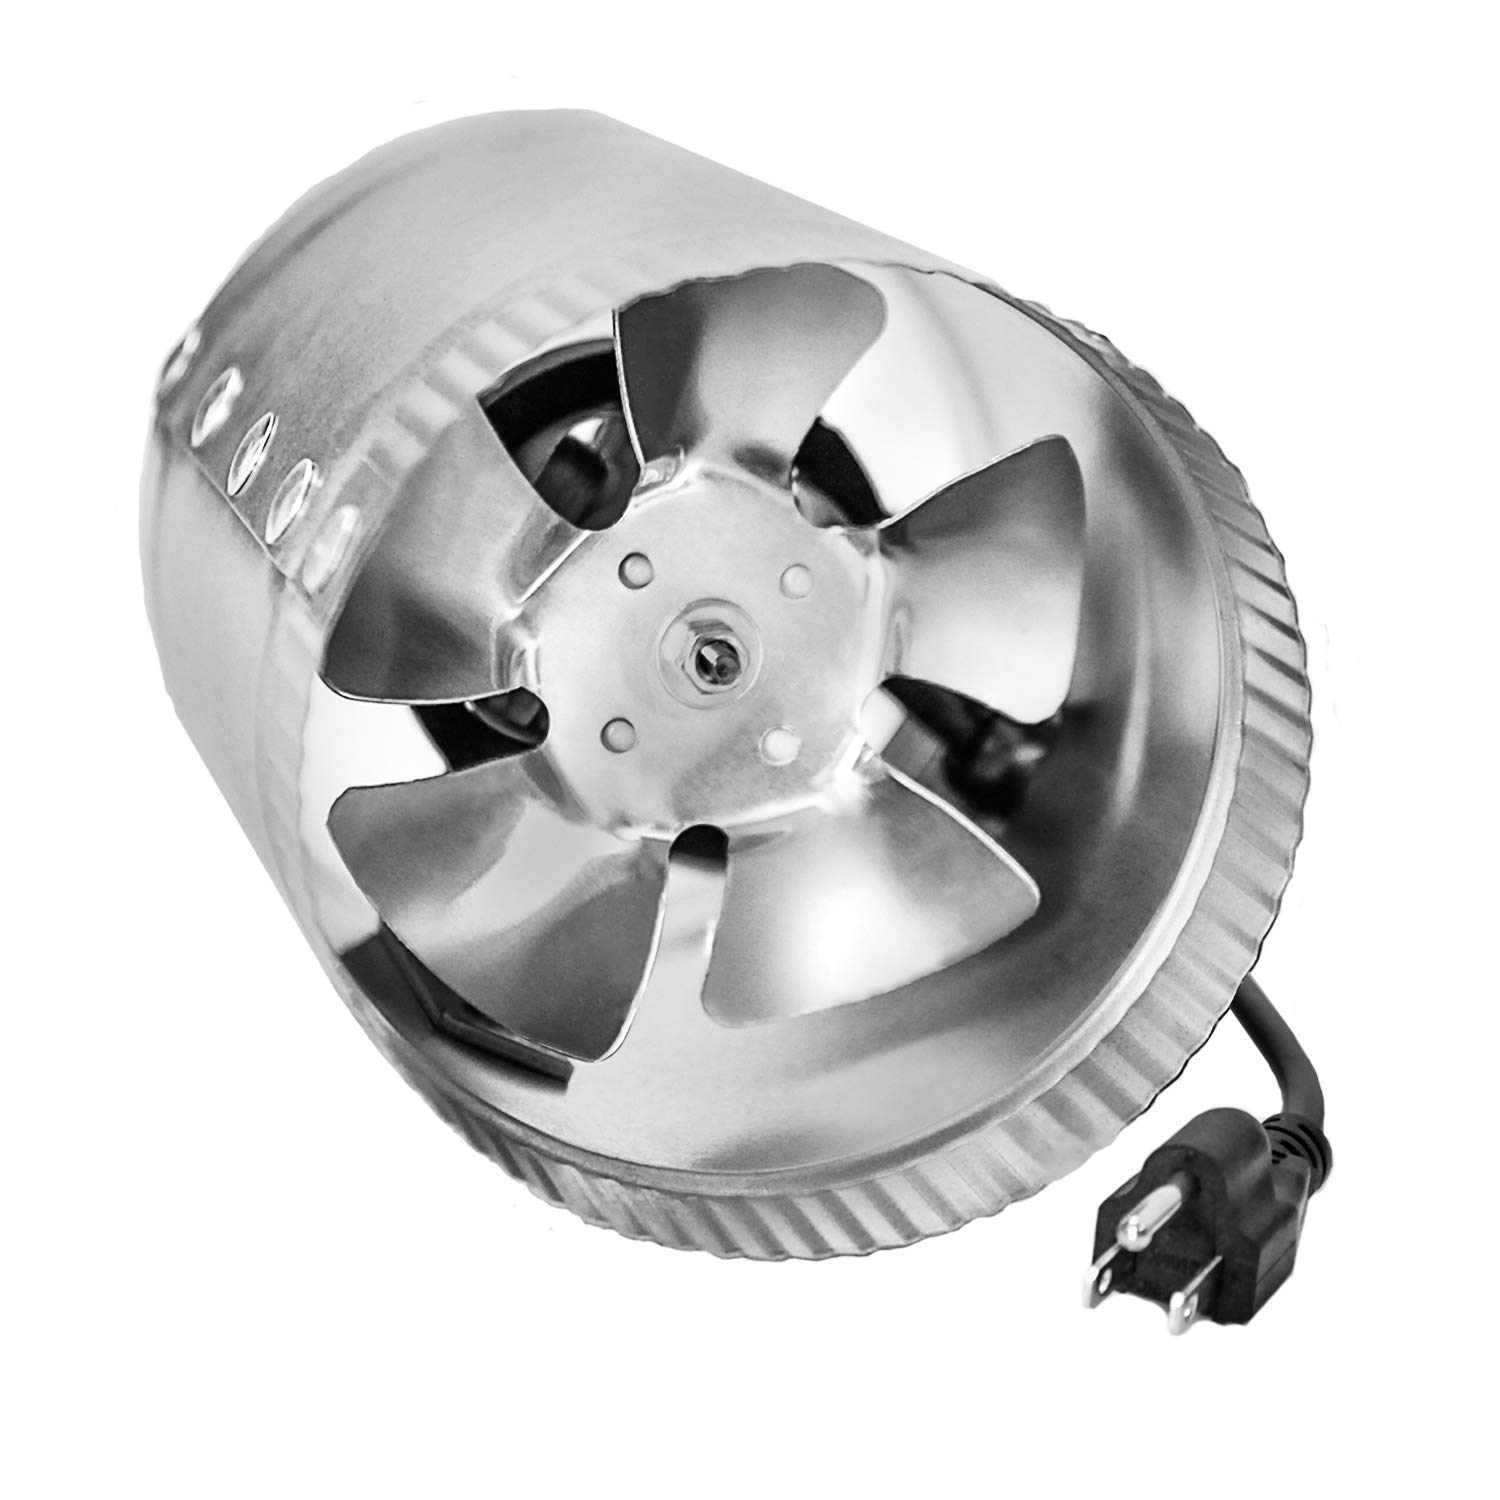 """iPower GLFANXBOOSTER4 4 Inch 100 CFM Booster HVAC Fans, 4"""""""